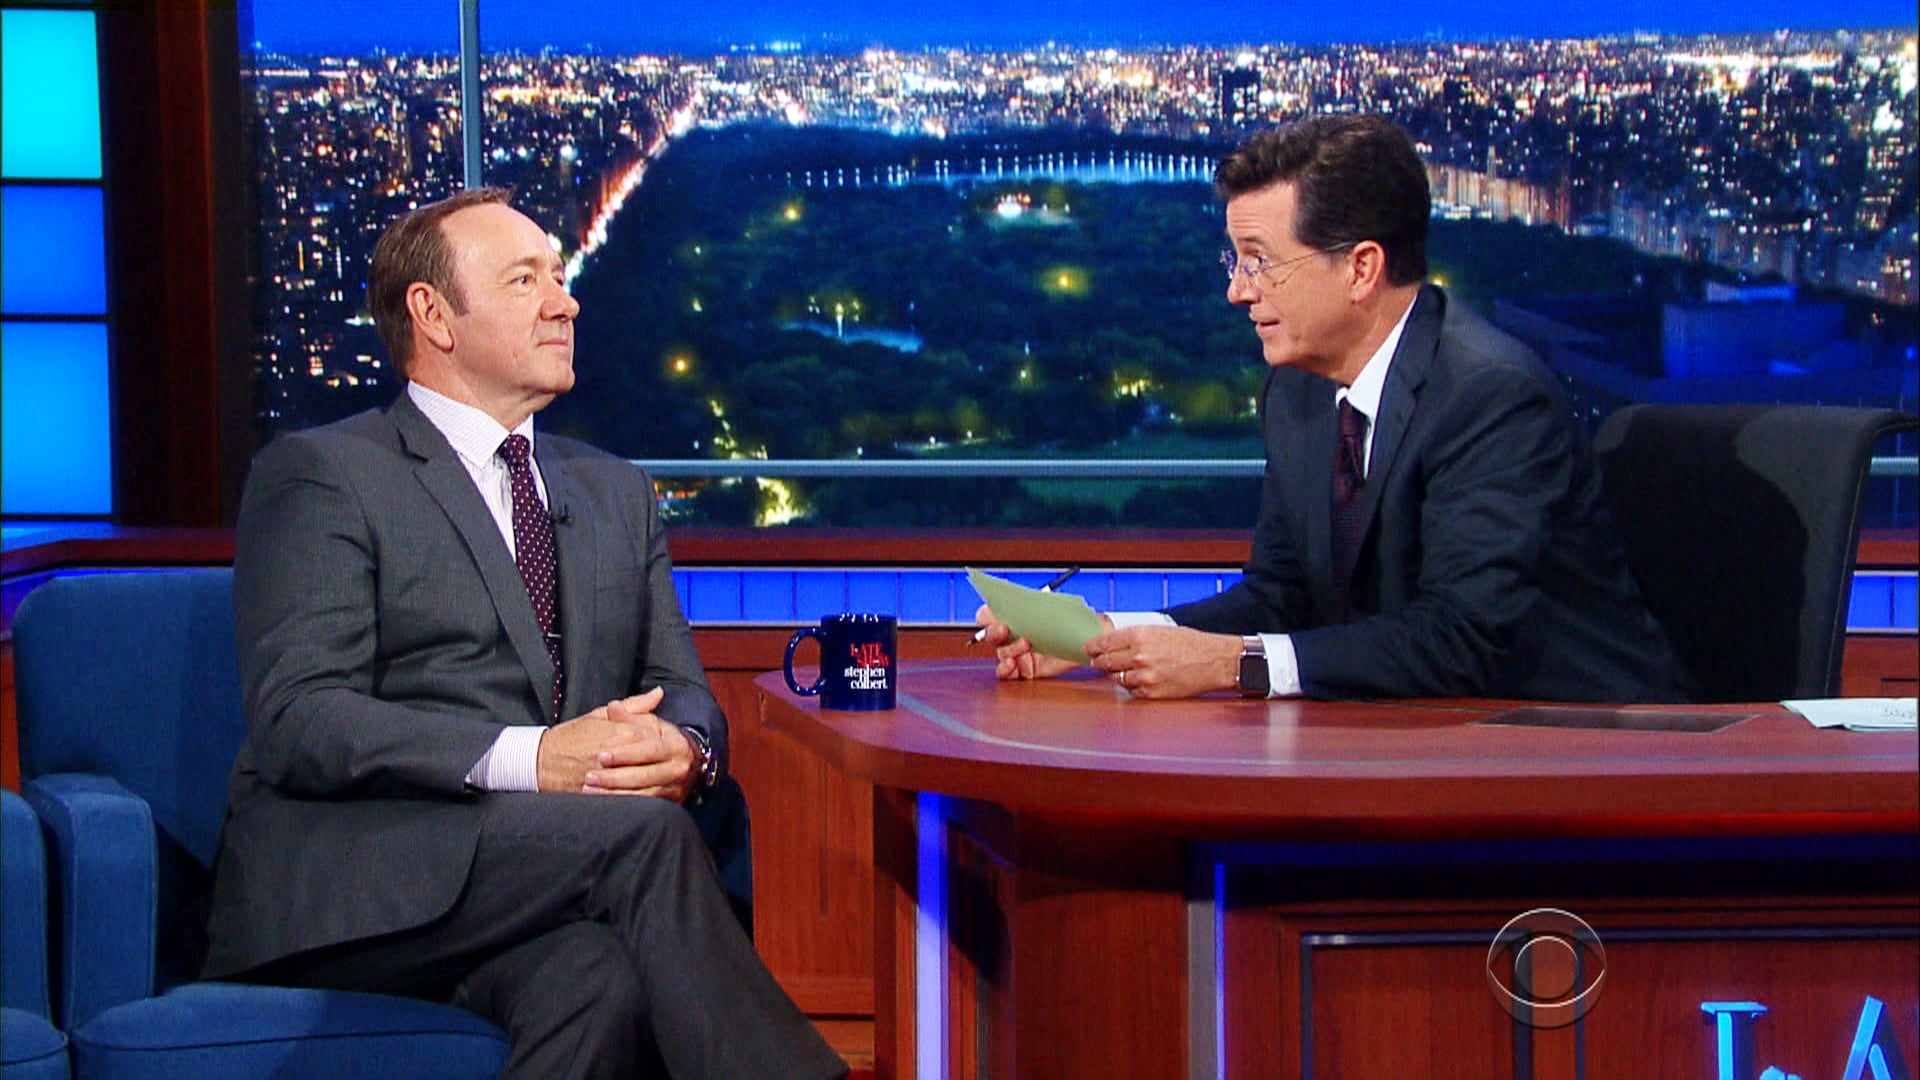 The Late Show with Stephen Colbert Season 1 :Episode 7  Kevin Spacey, Carol Burnett, Abbi Jacobson,  Ilana Glazer, Willie Nelson